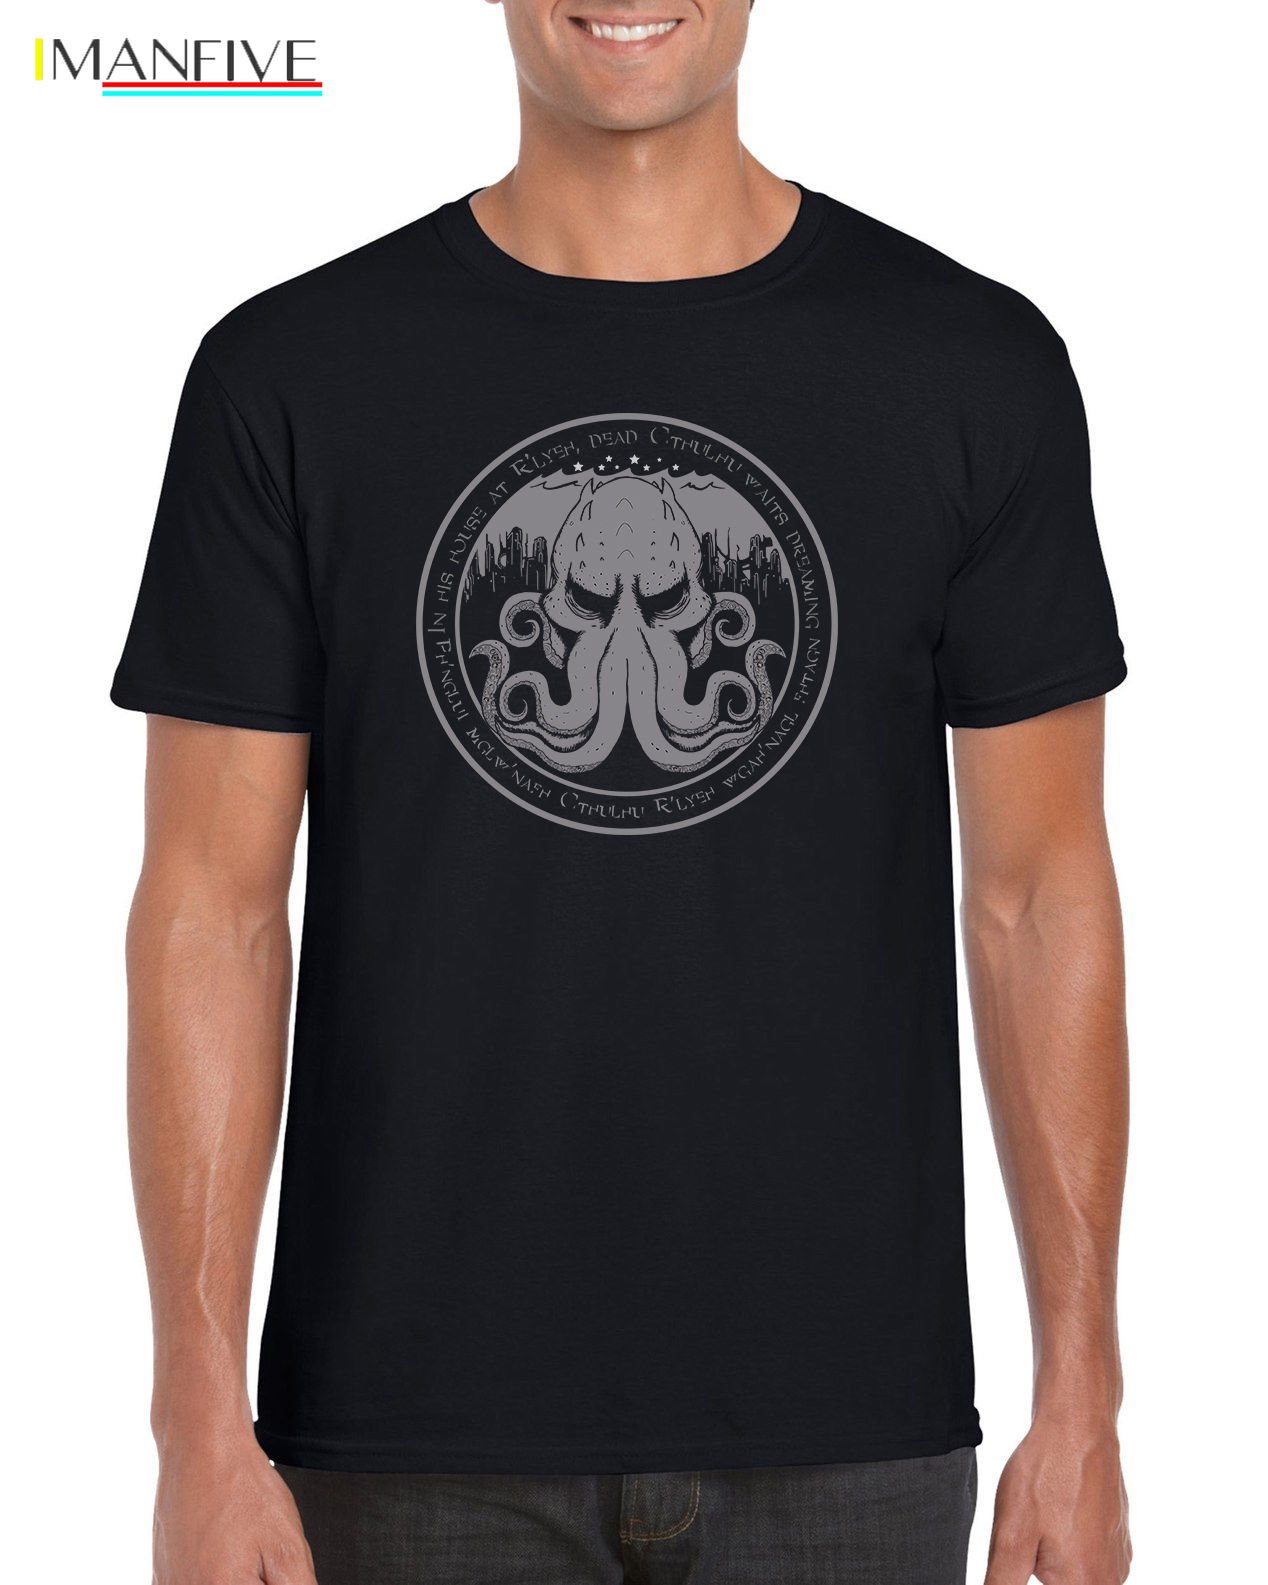 quot In His House At R 39 yleh quot Cthulhu Lovecraft Inspired Book T shirt S 3XL Men T Shirt Great Quality Funny Man Cotton in T Shirts from Men 39 s Clothing